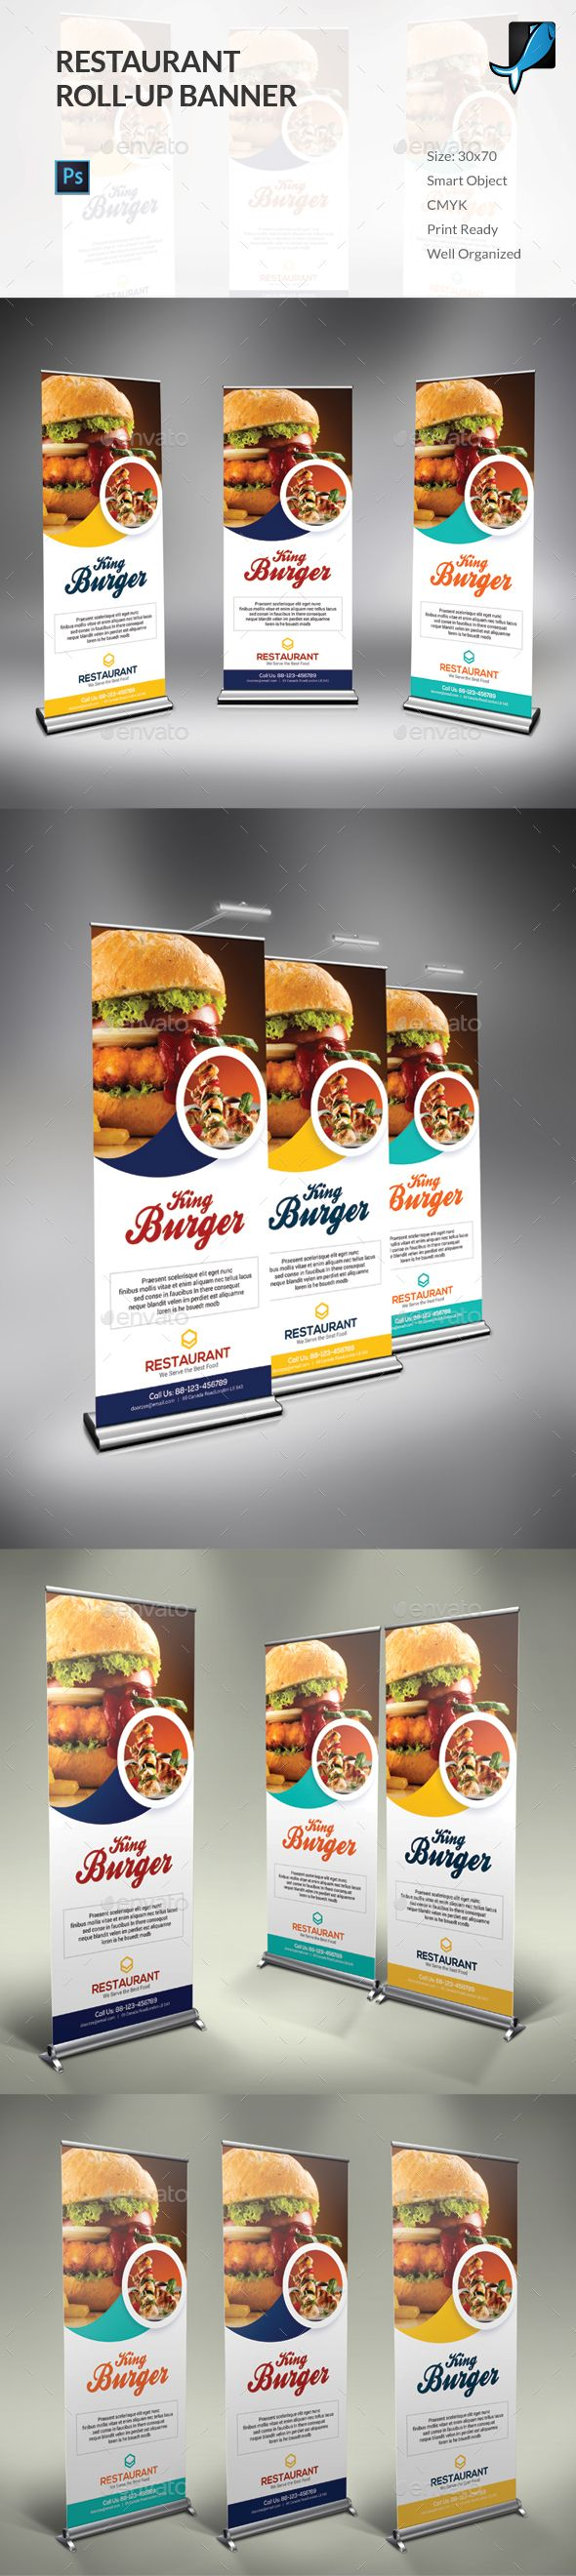 Restaurant Rollup Banner Template PSD #design Download: http://graphicriver.net/item/restaurant-rollup-banner/14163998?ref=ksioks